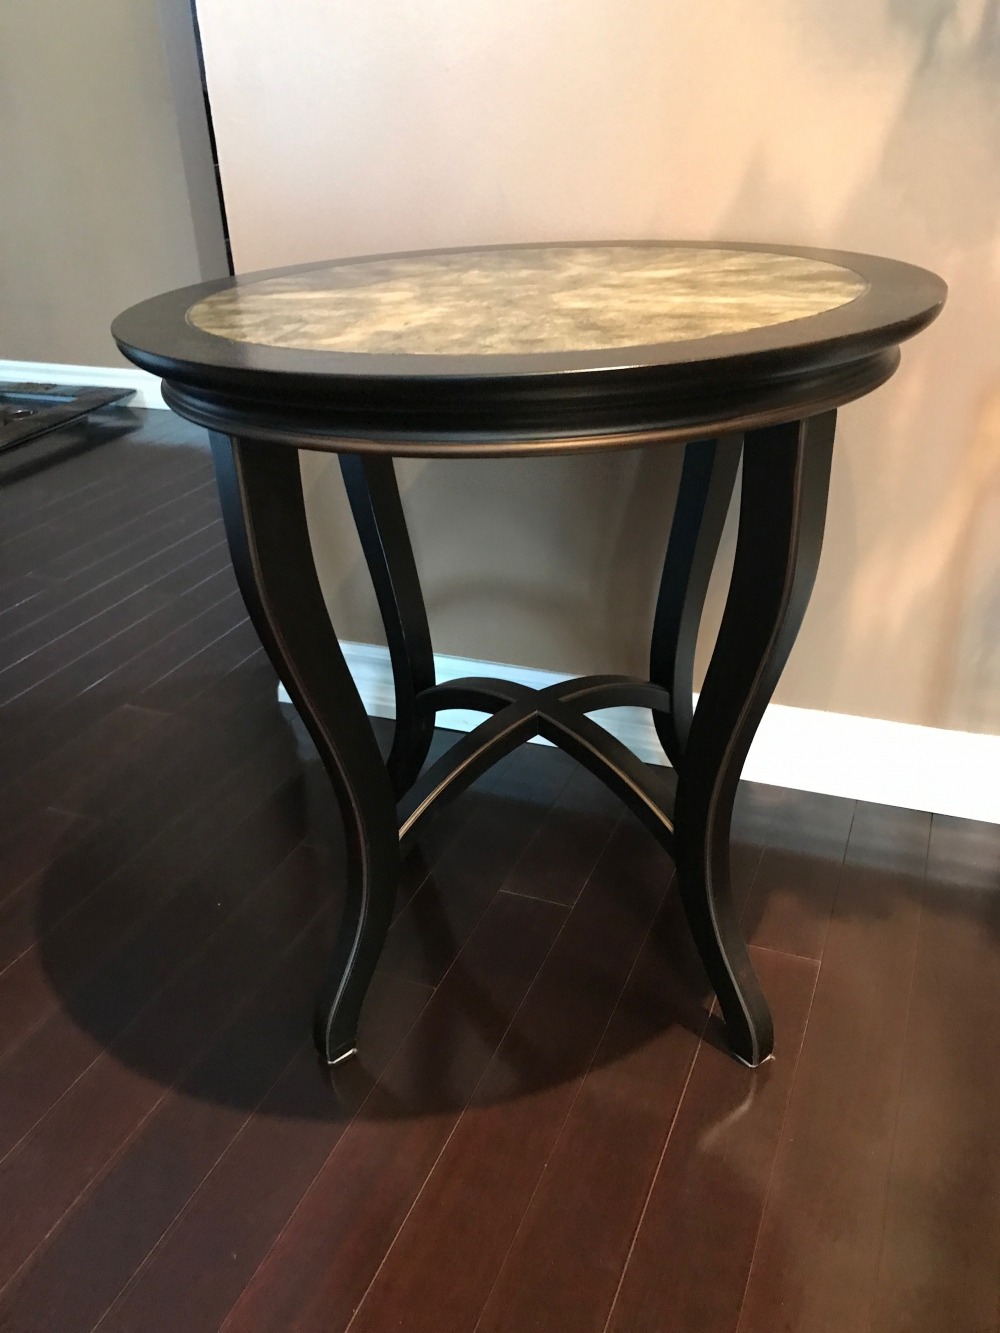 small accent table nesting tables very unique home decor oak threshold trim pair white bedside square lucite coffee wrought iron end living room glass dining and chairs clearance